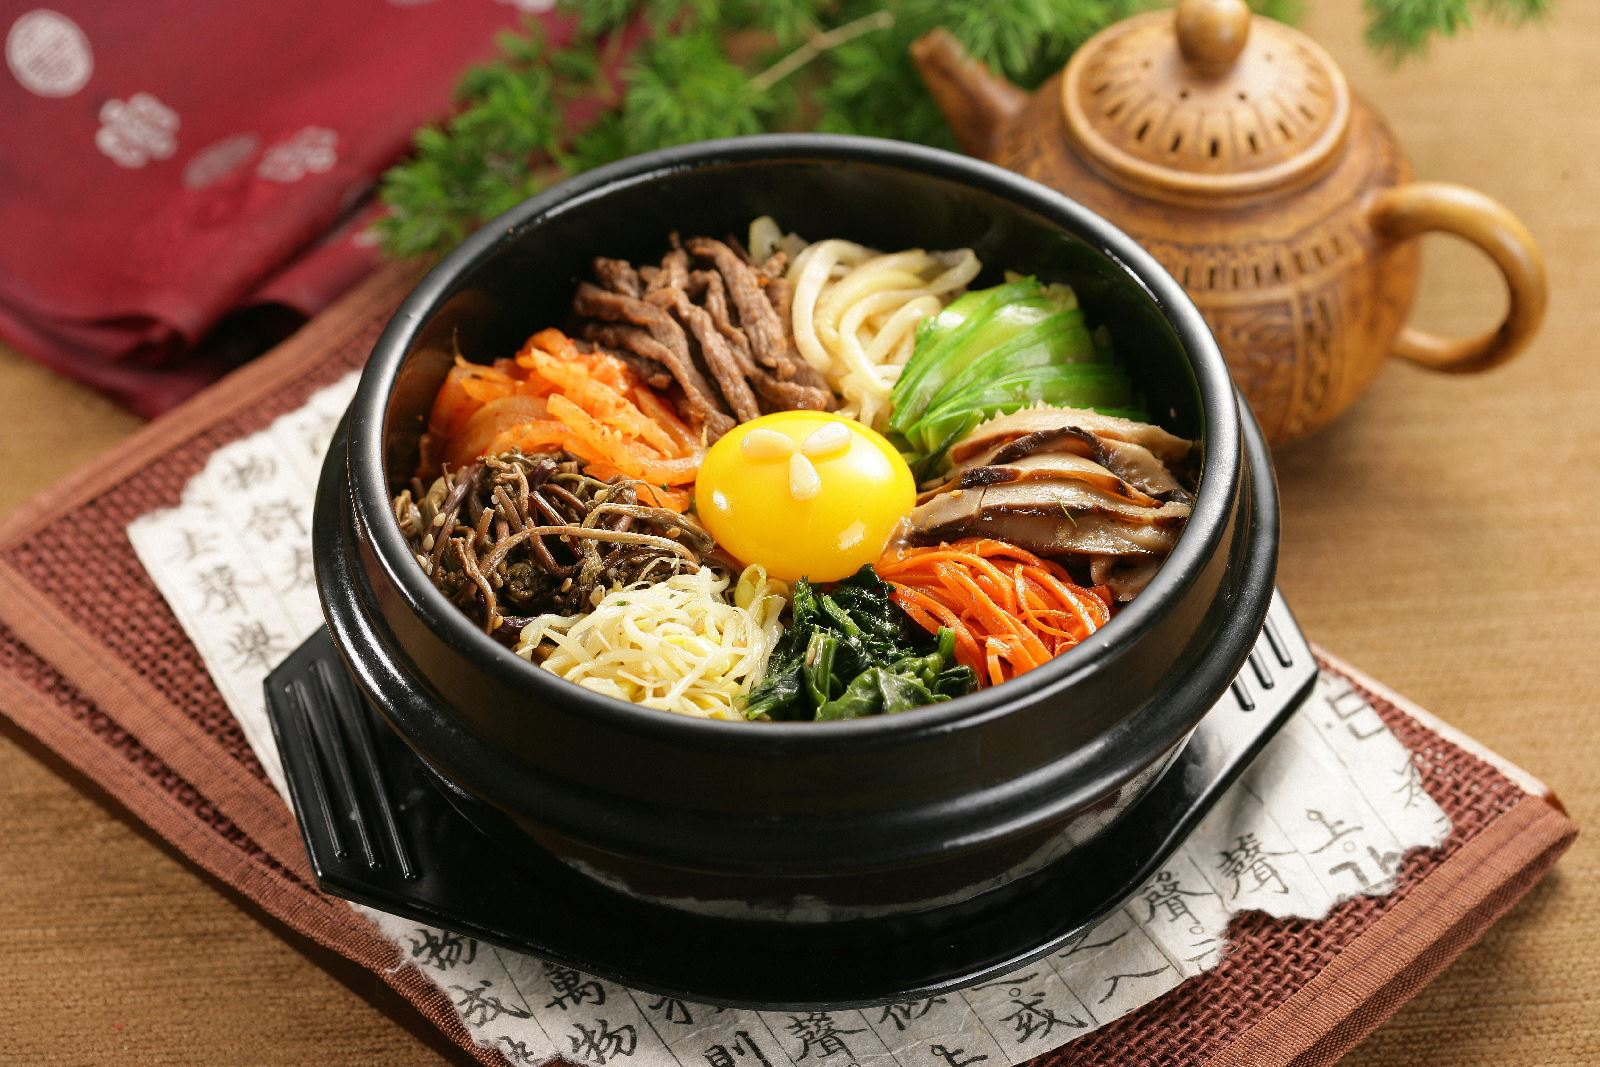 Hyang To Gol Korean Restaurant (Amara Hotel) | Burpple - 54 Reviews -  Tanjong Pagar, Singapore